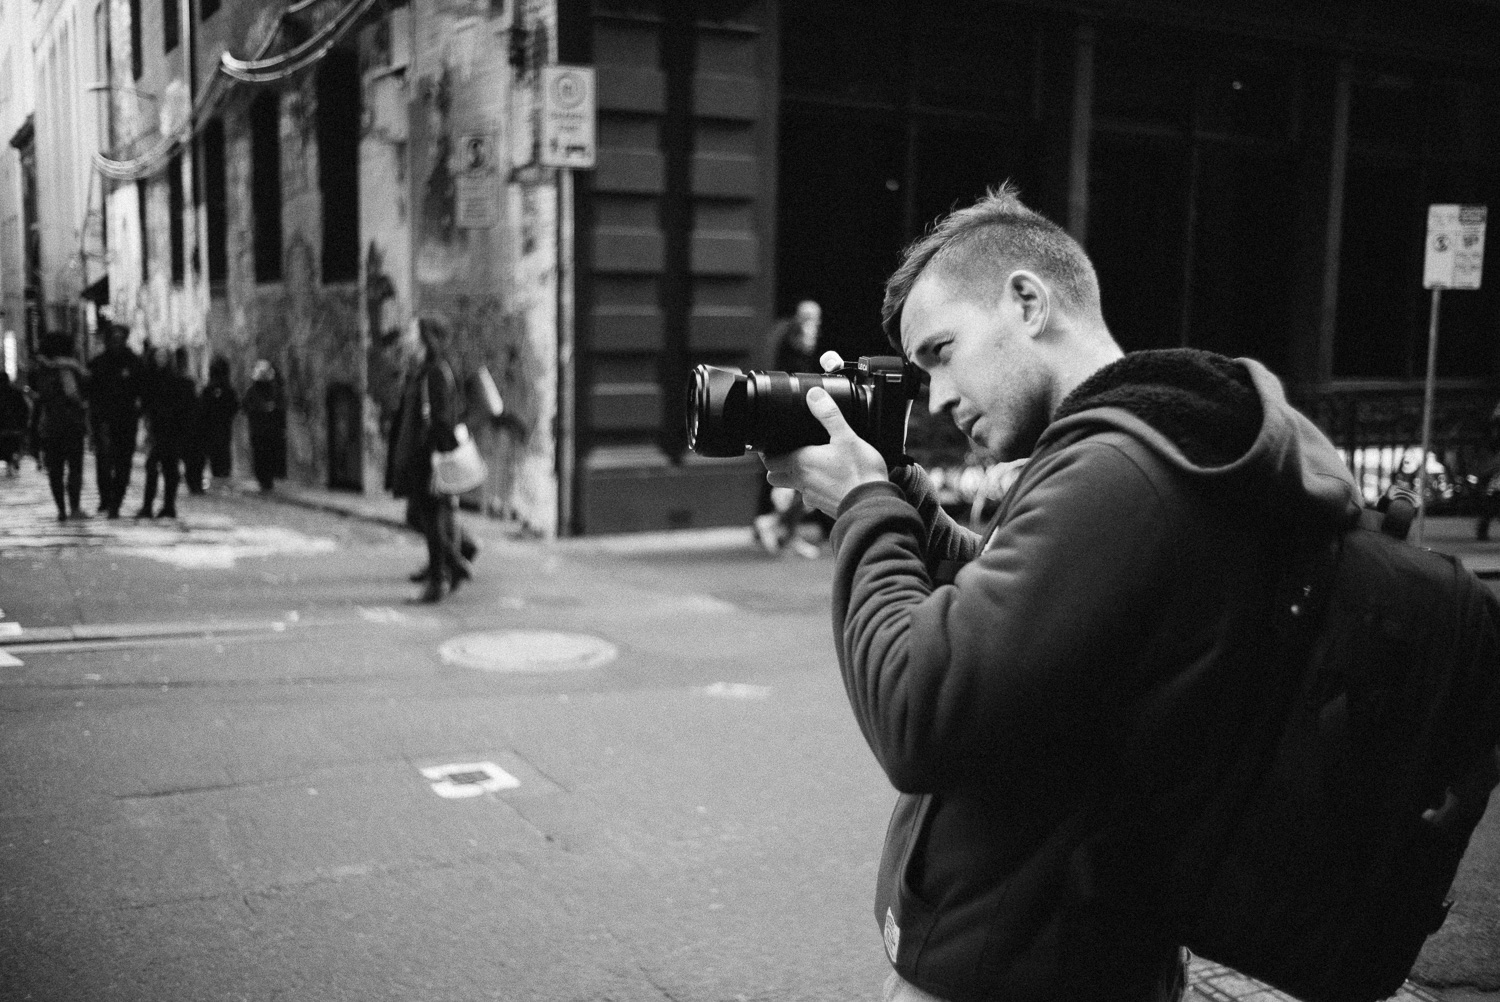 Connor with the Leica SL.